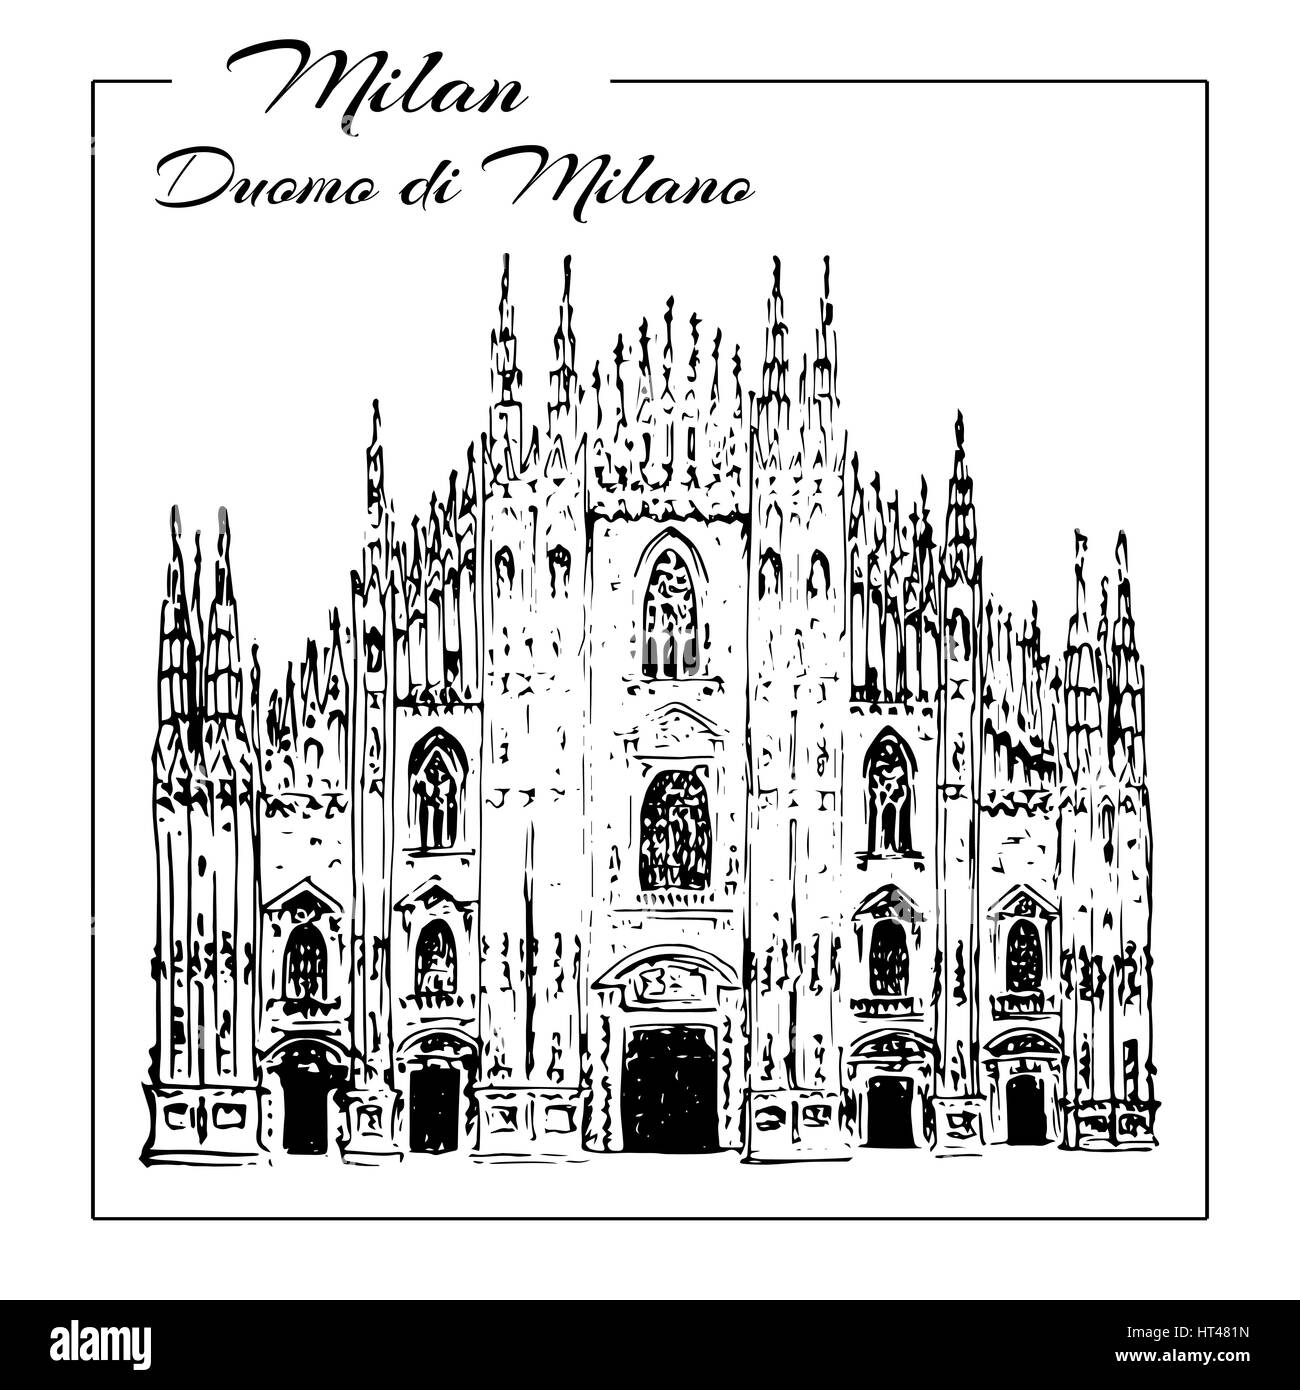 Duomo di Milano. Italy sightseeing. Main cathedral in Milan. Hand drawn sketch illustration. Can be used at advertising, - Stock Image